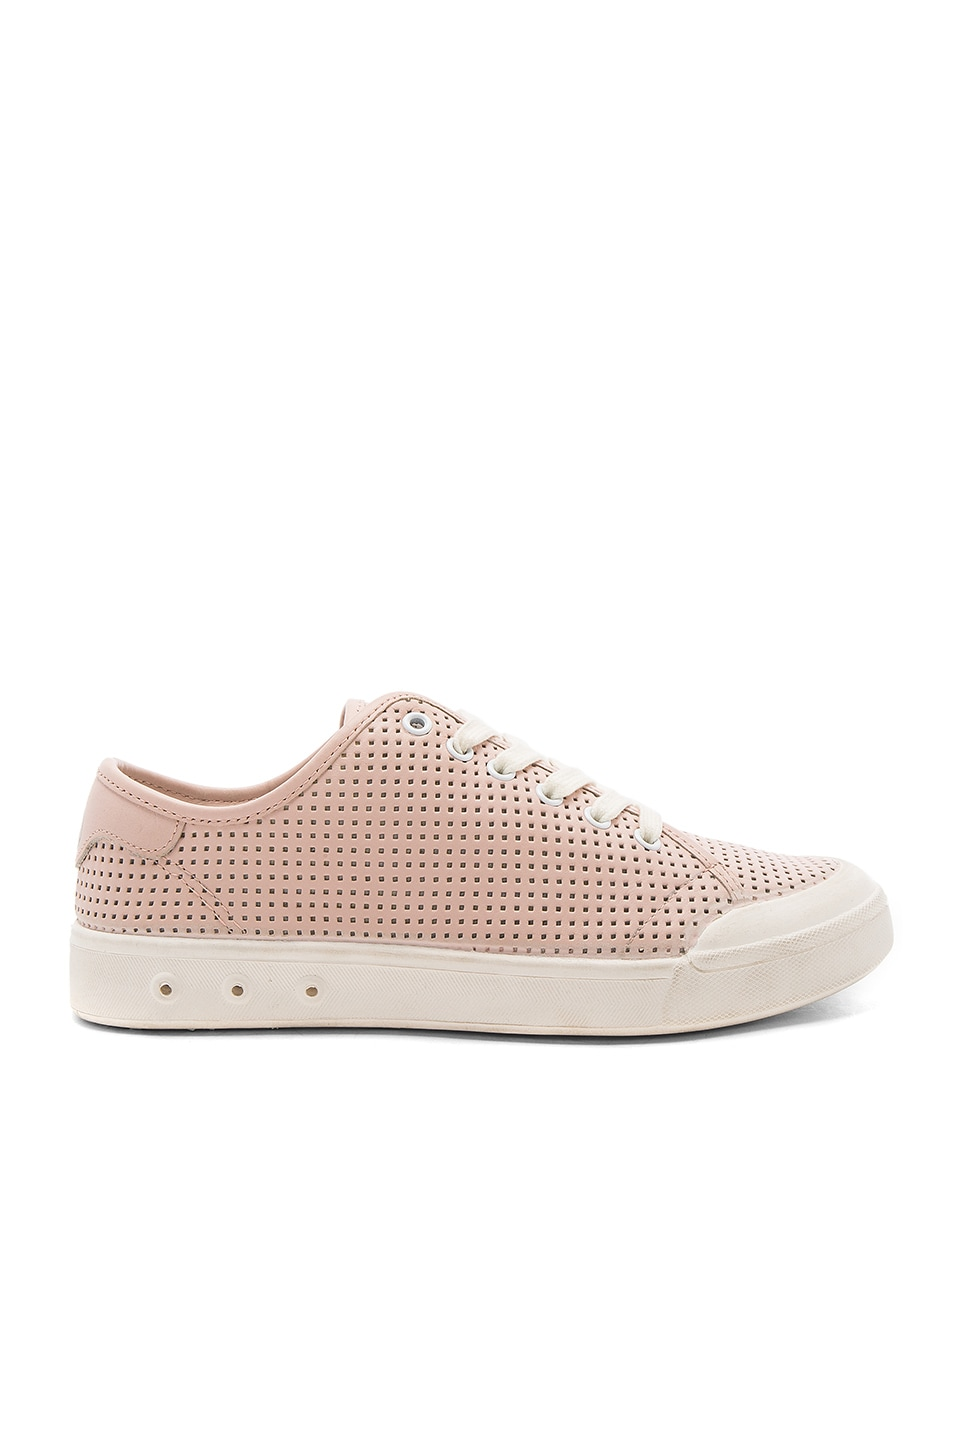 Rag & Bone Standard Issue Lace Up Sneaker in Pink Perforated